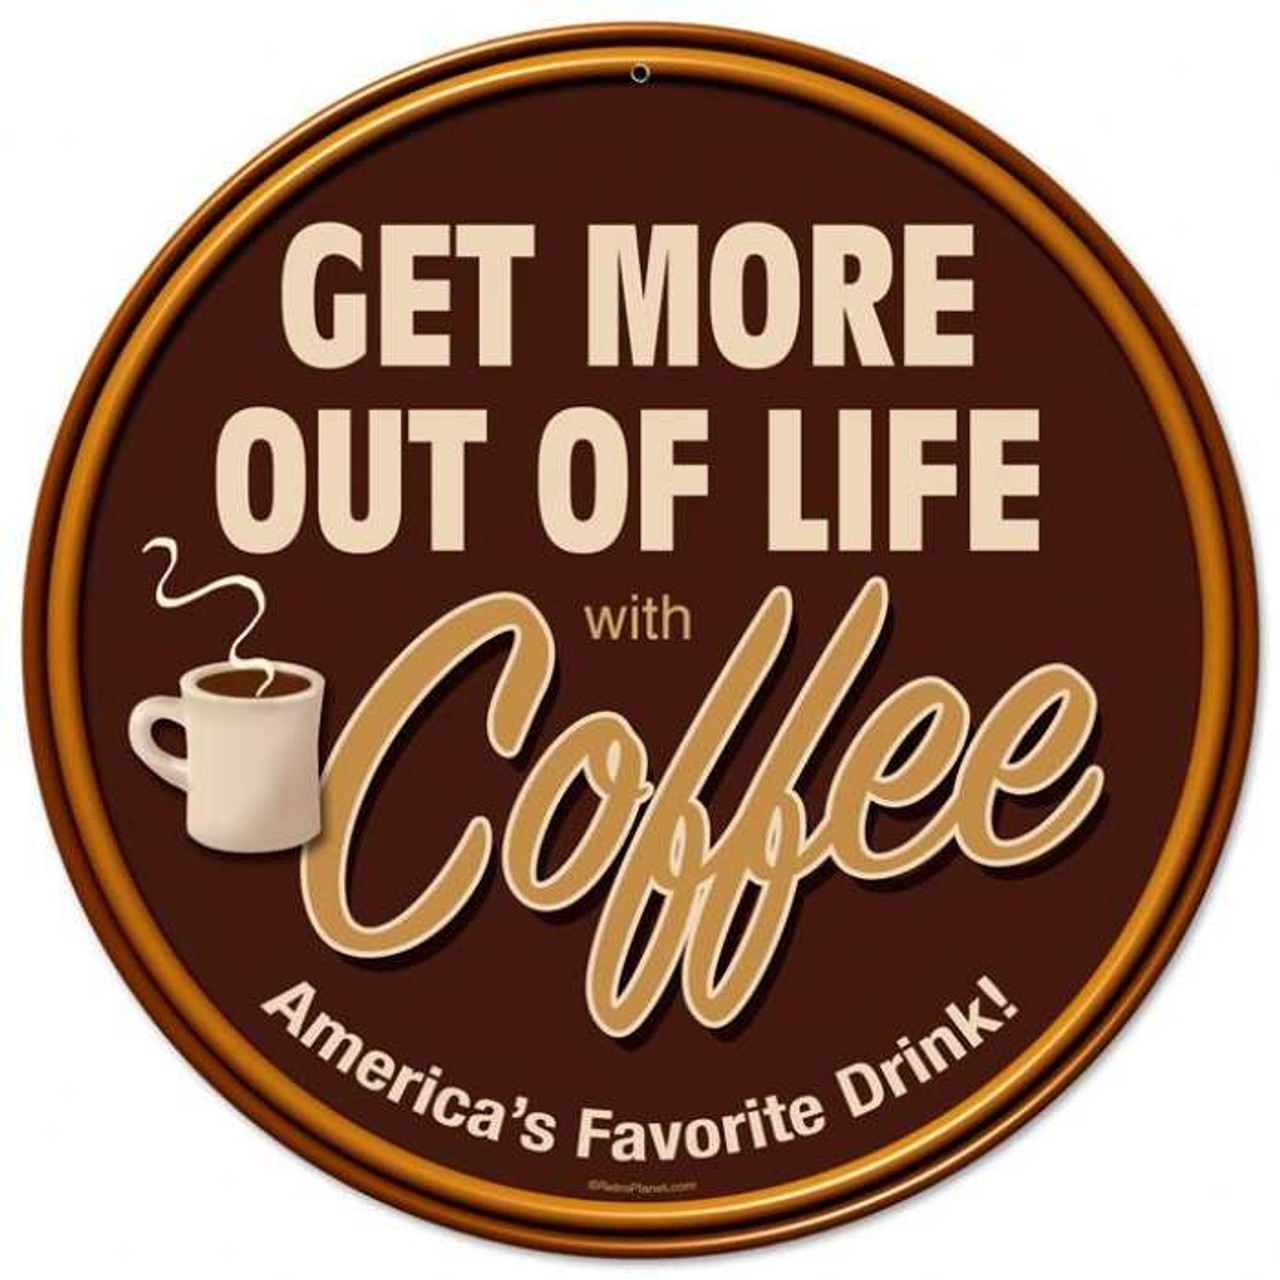 Retro Get More Coffee Round Metal Sign 14 x 14 Inches